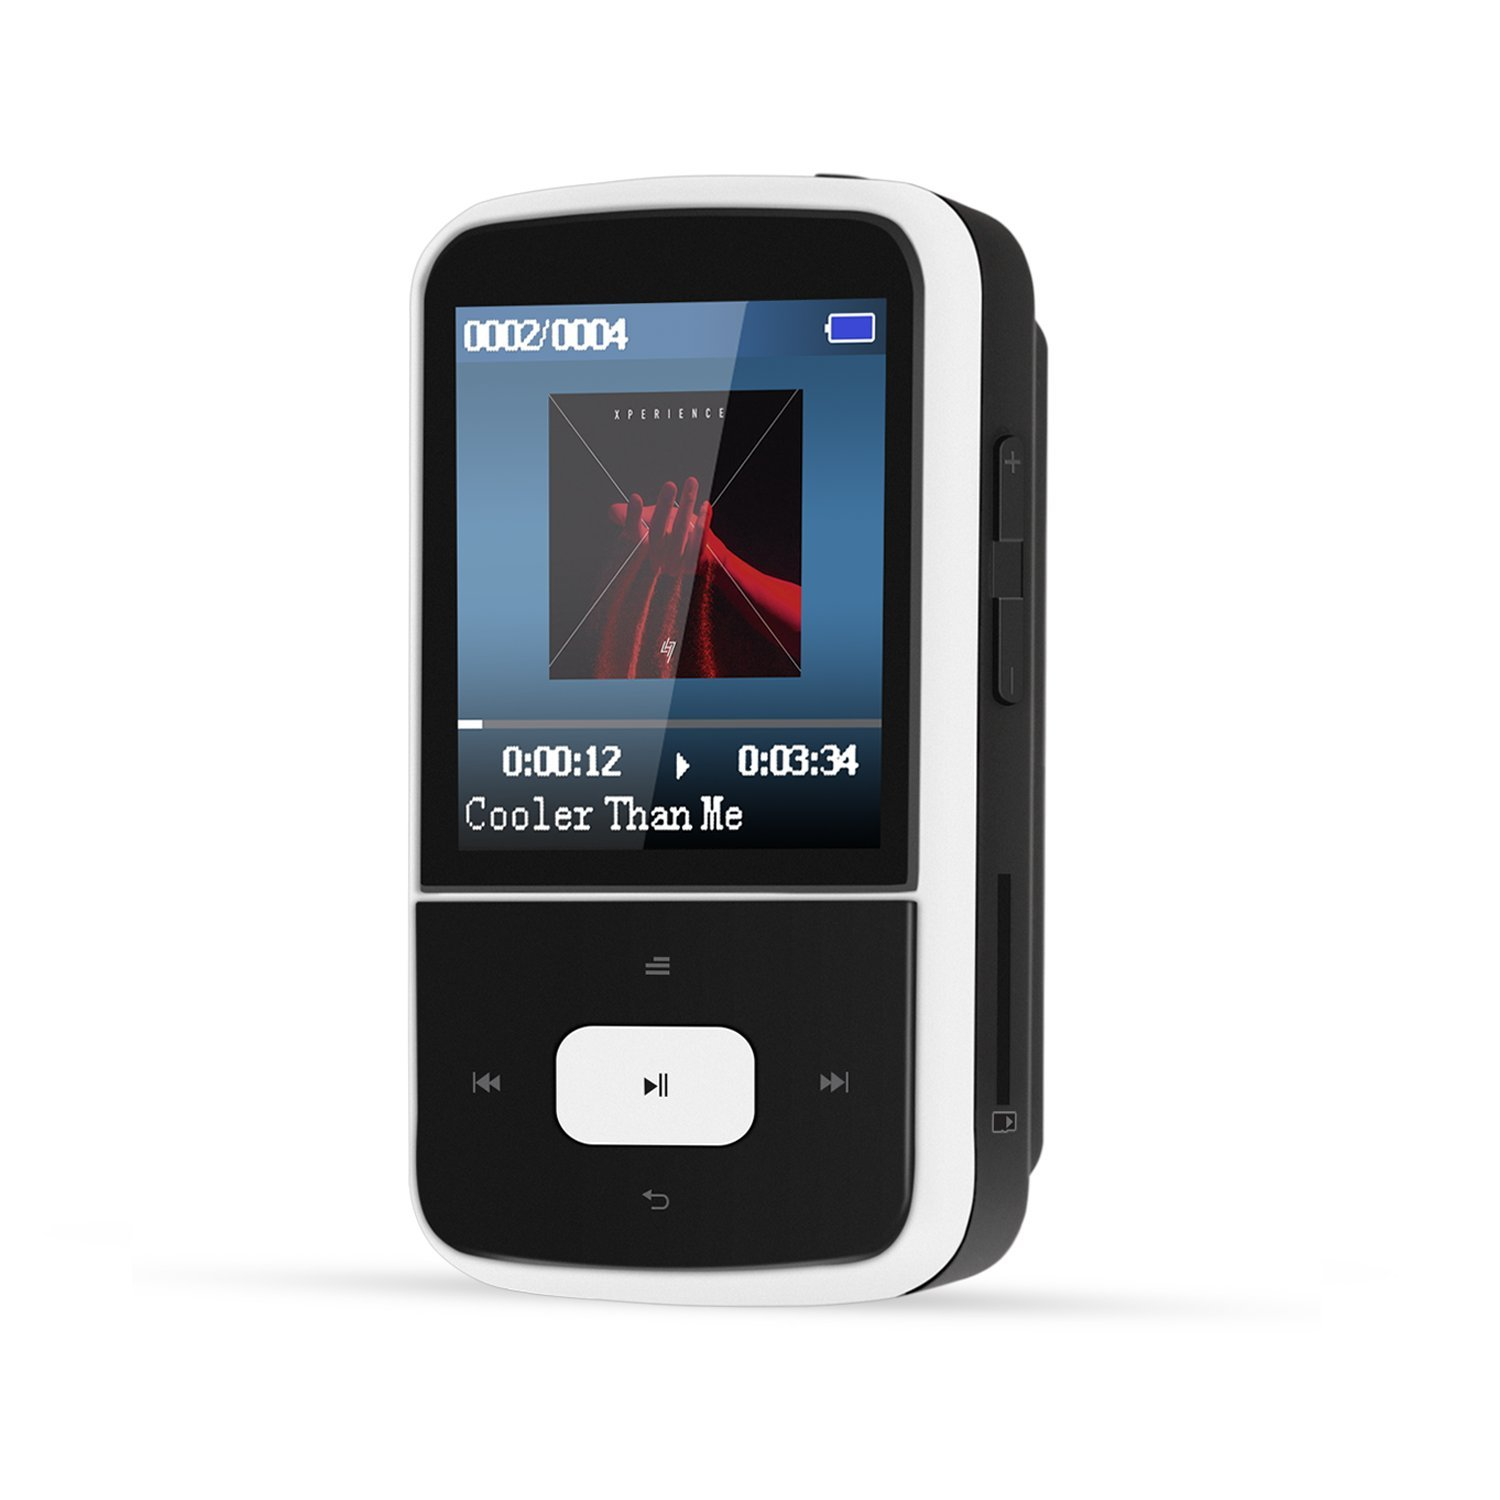 AGPTEK G05W 8GB Bluetooth MP3 Player, Clip Lossless Music Player with FM Radio, Supports Up to 64GB, Black